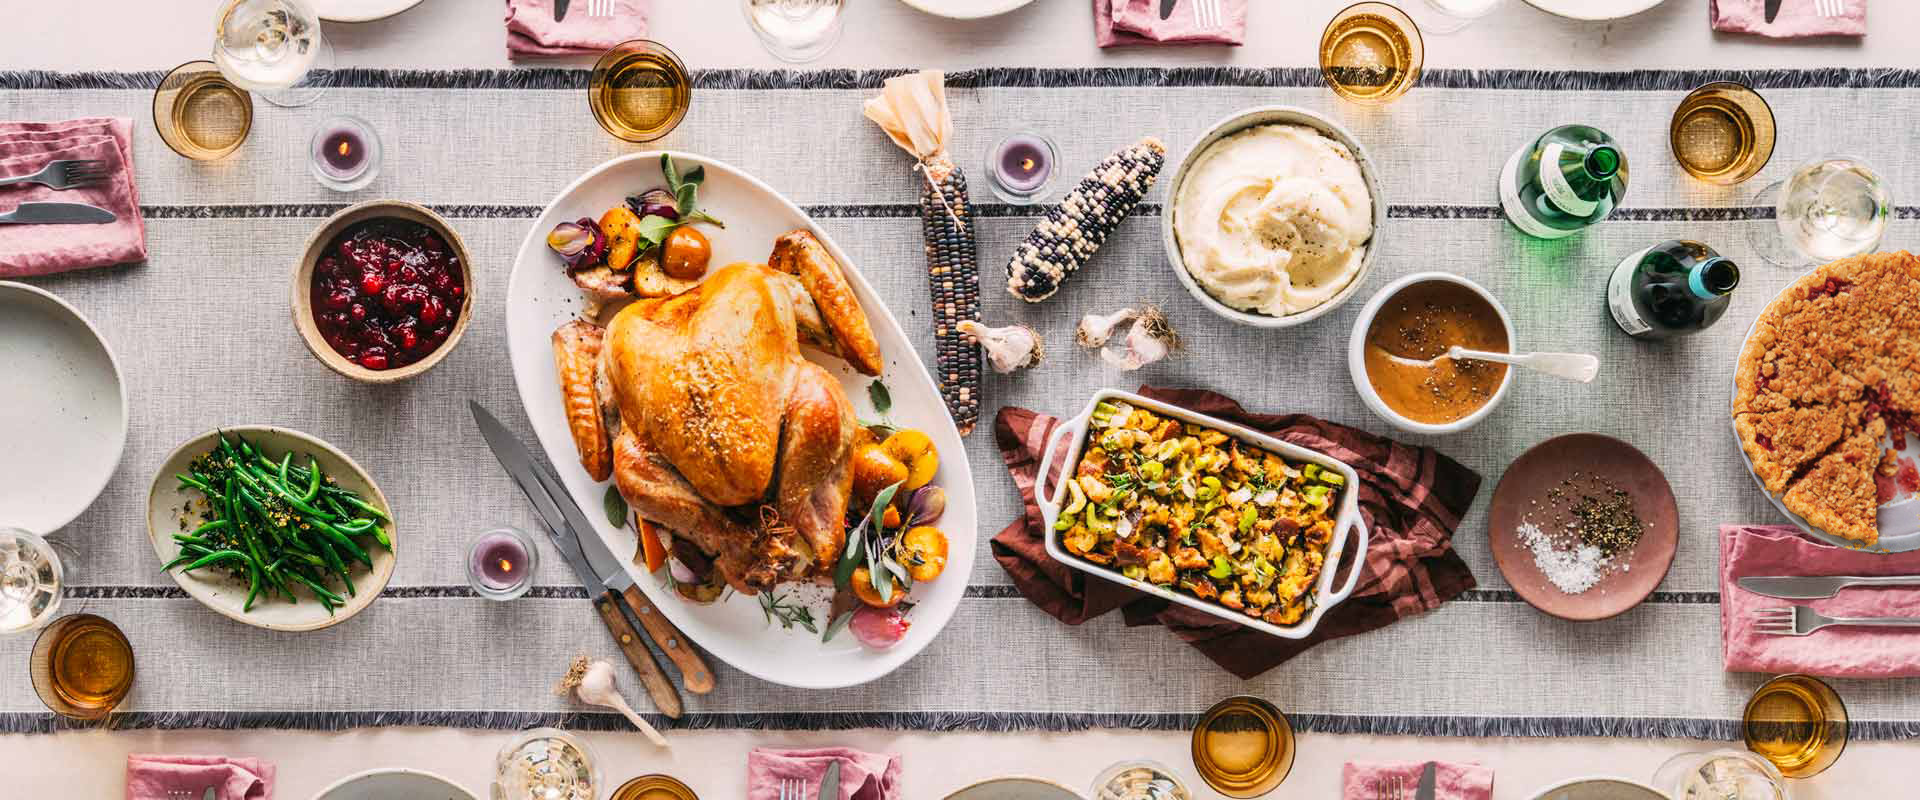 Whole Foods Vegan Thanksgiving Dinner  5 Places You Can Pick Up Ready Made Thanksgiving Dinner